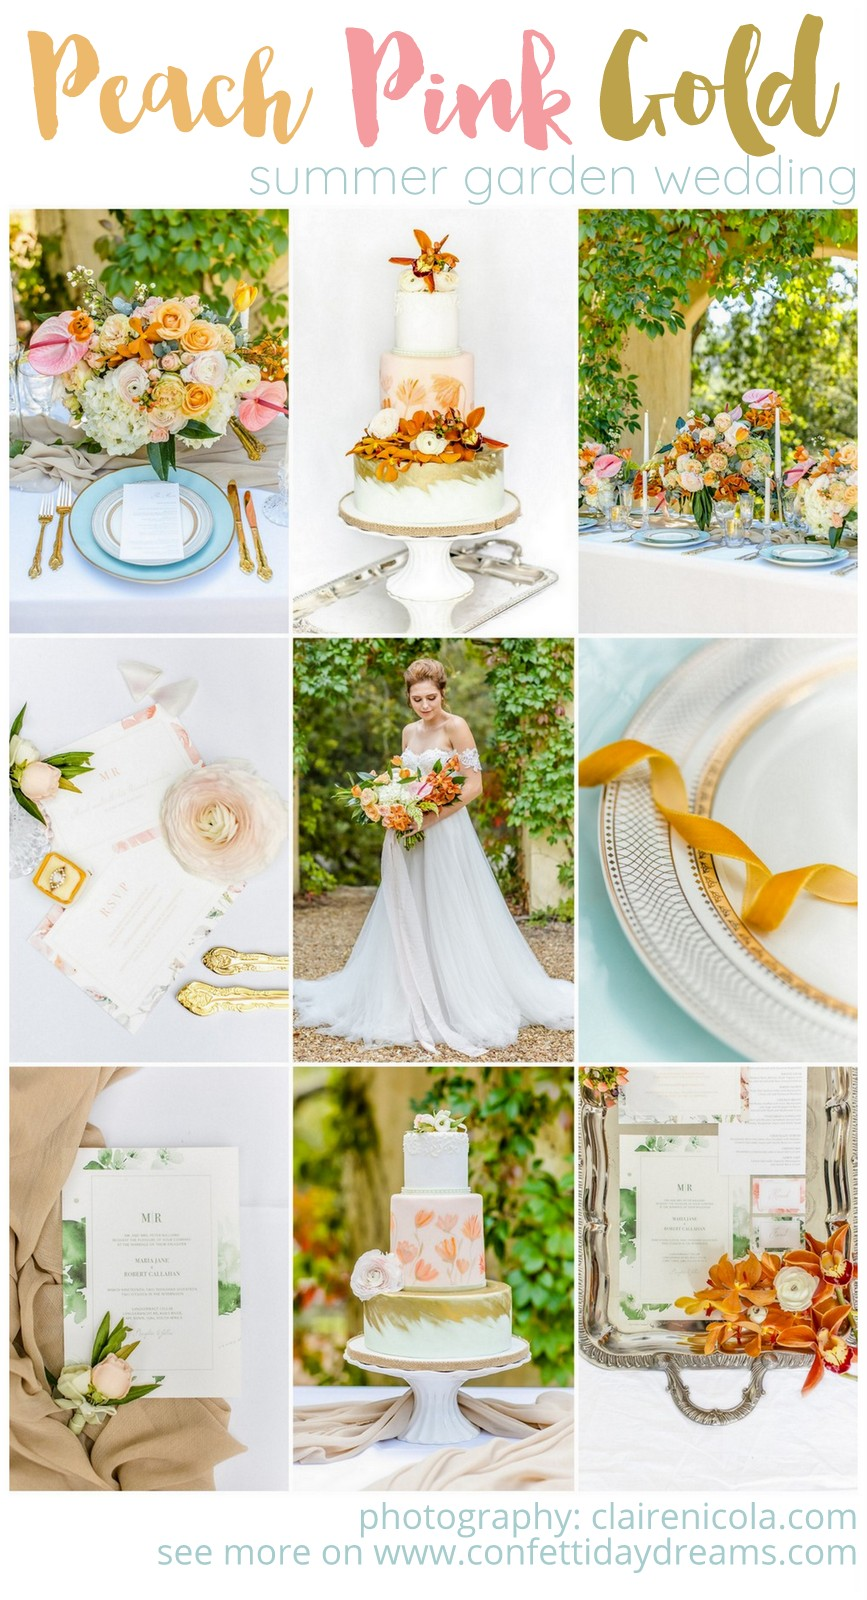 Peach Pink and Gold Summer Wedding ideas for your outdoor celebration!